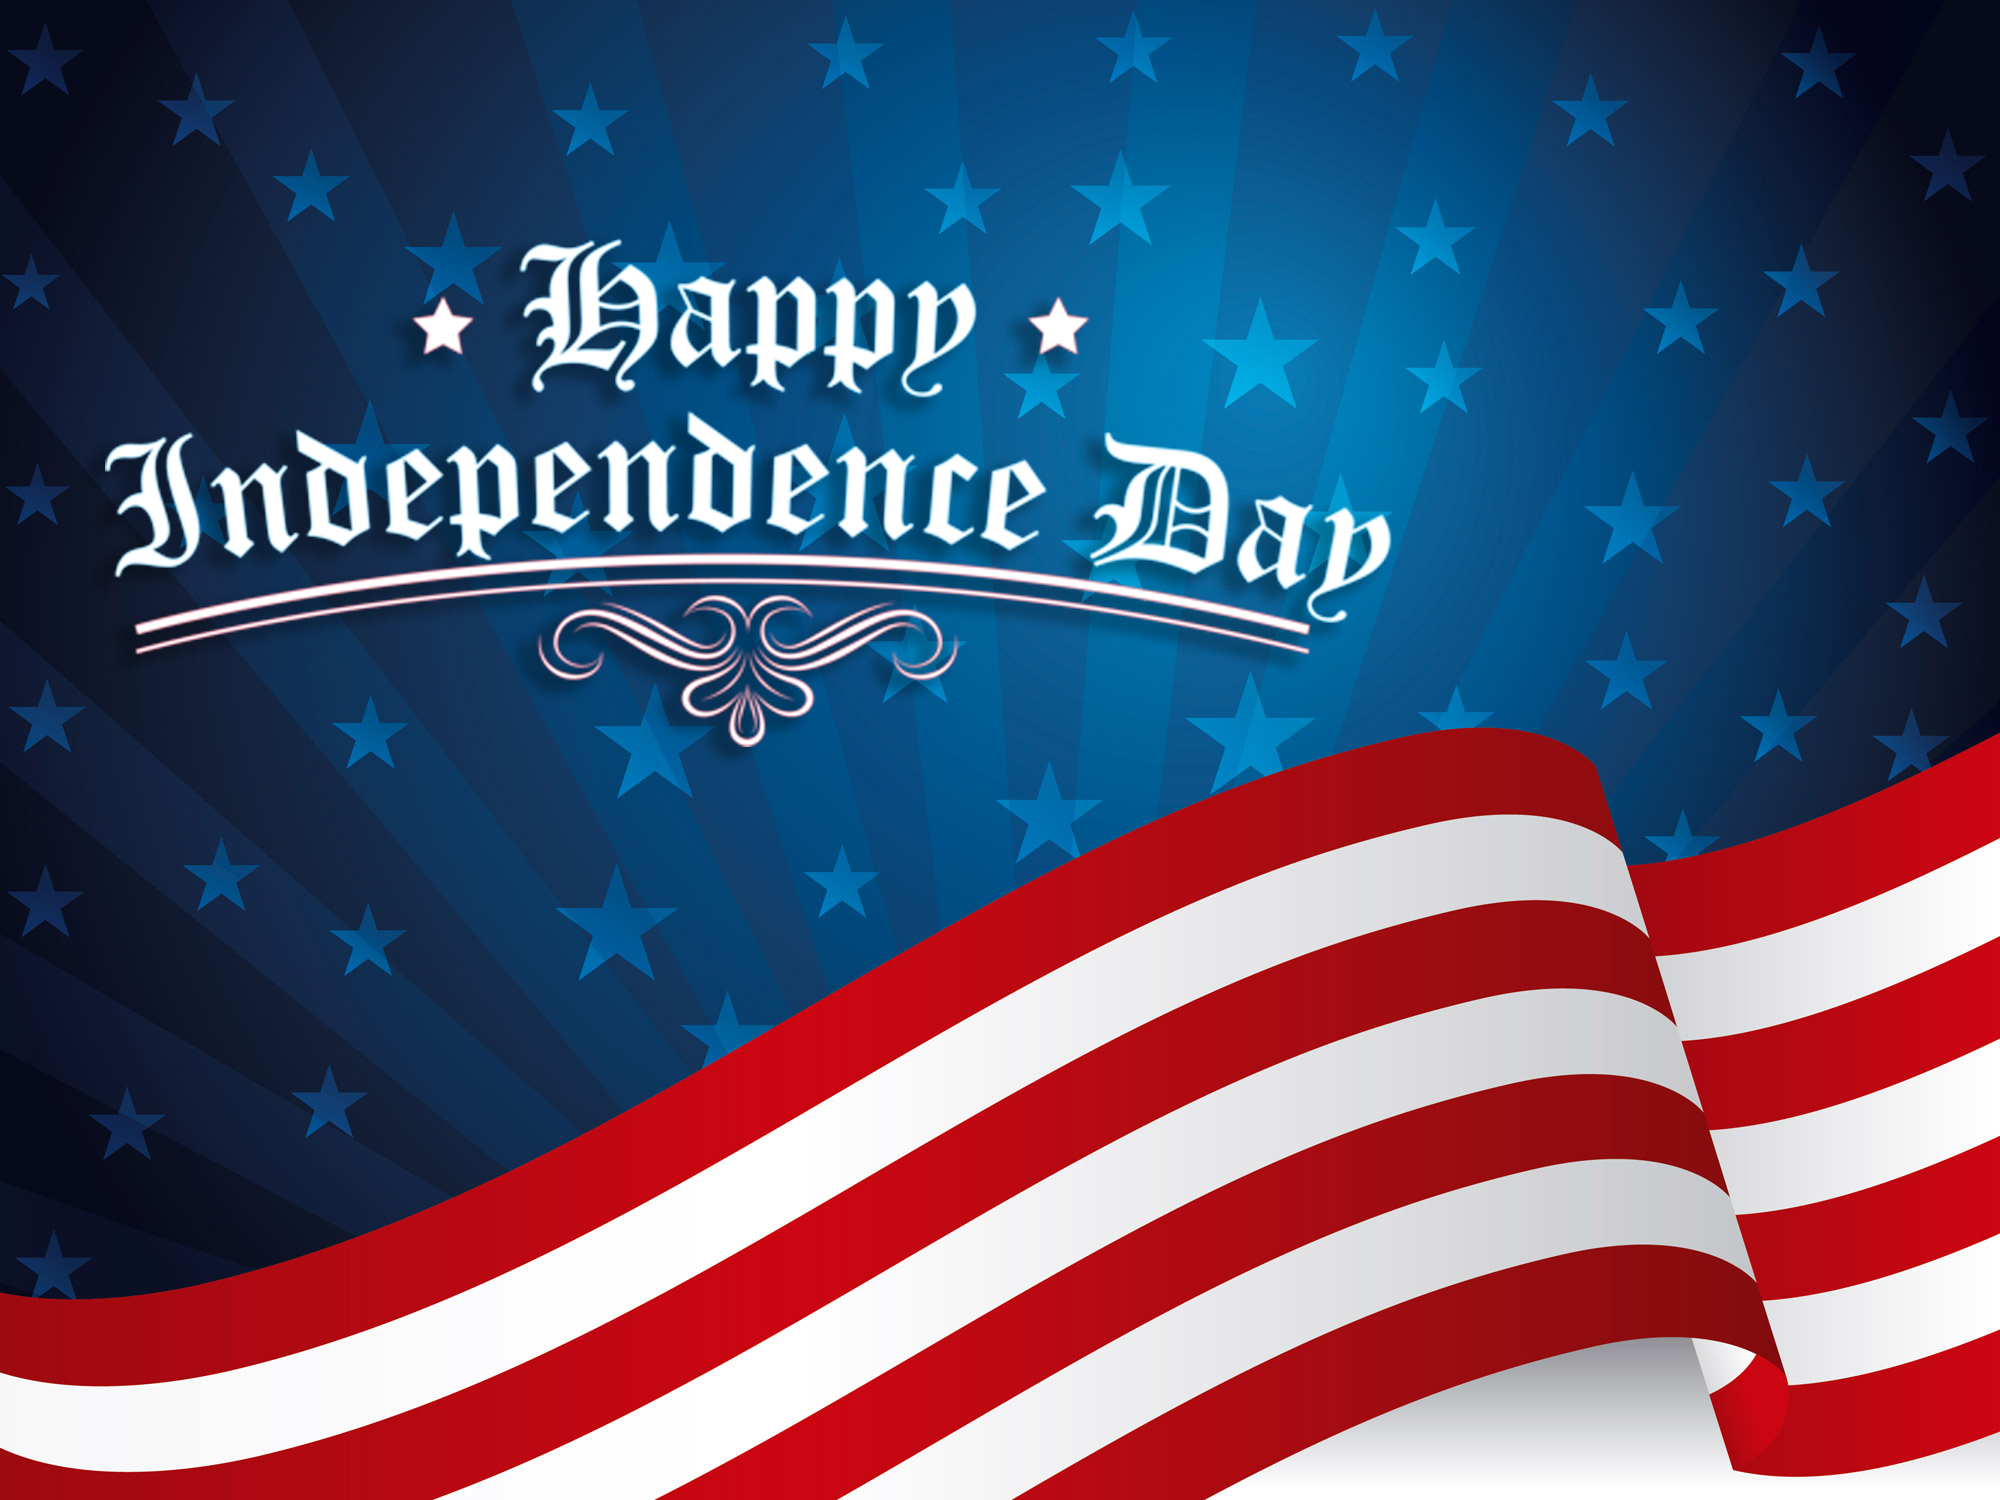 Happy 4th July Independence Day Celebration